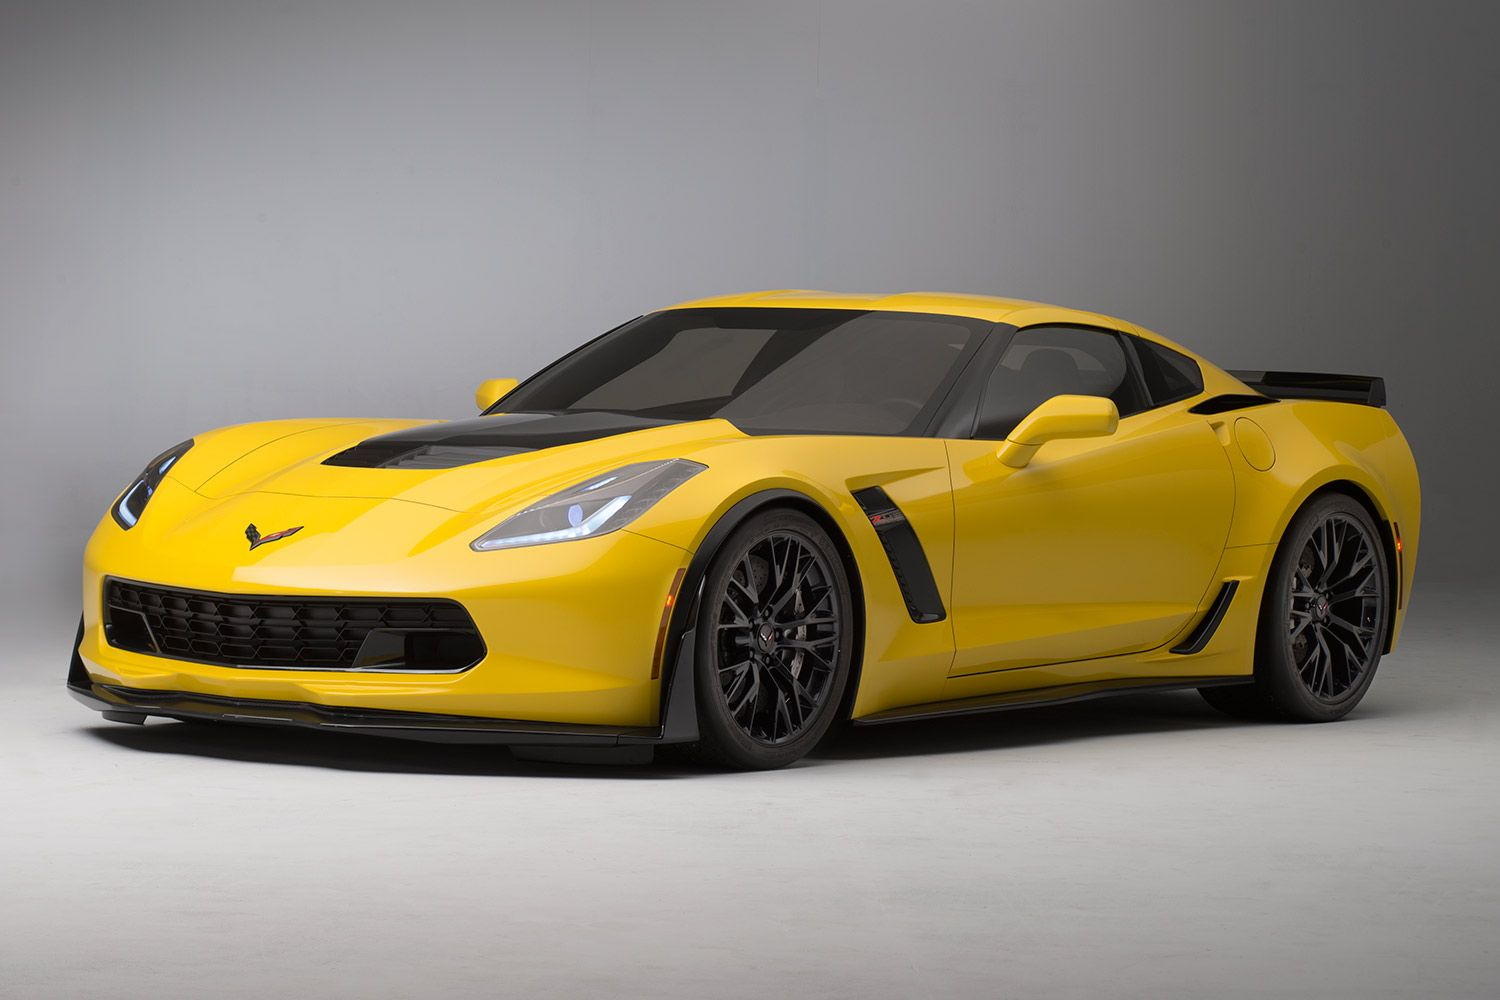 Chevrolet corvette c2 sting ray reviews prices ratings with - Chevrolet Corvette Grand Sport Wallpaper Hd Car Wallpapers 1600 1200 Corvette Wallpaper 49 Wallpapers Adorable Wallpapers Wallpapers Pinterest